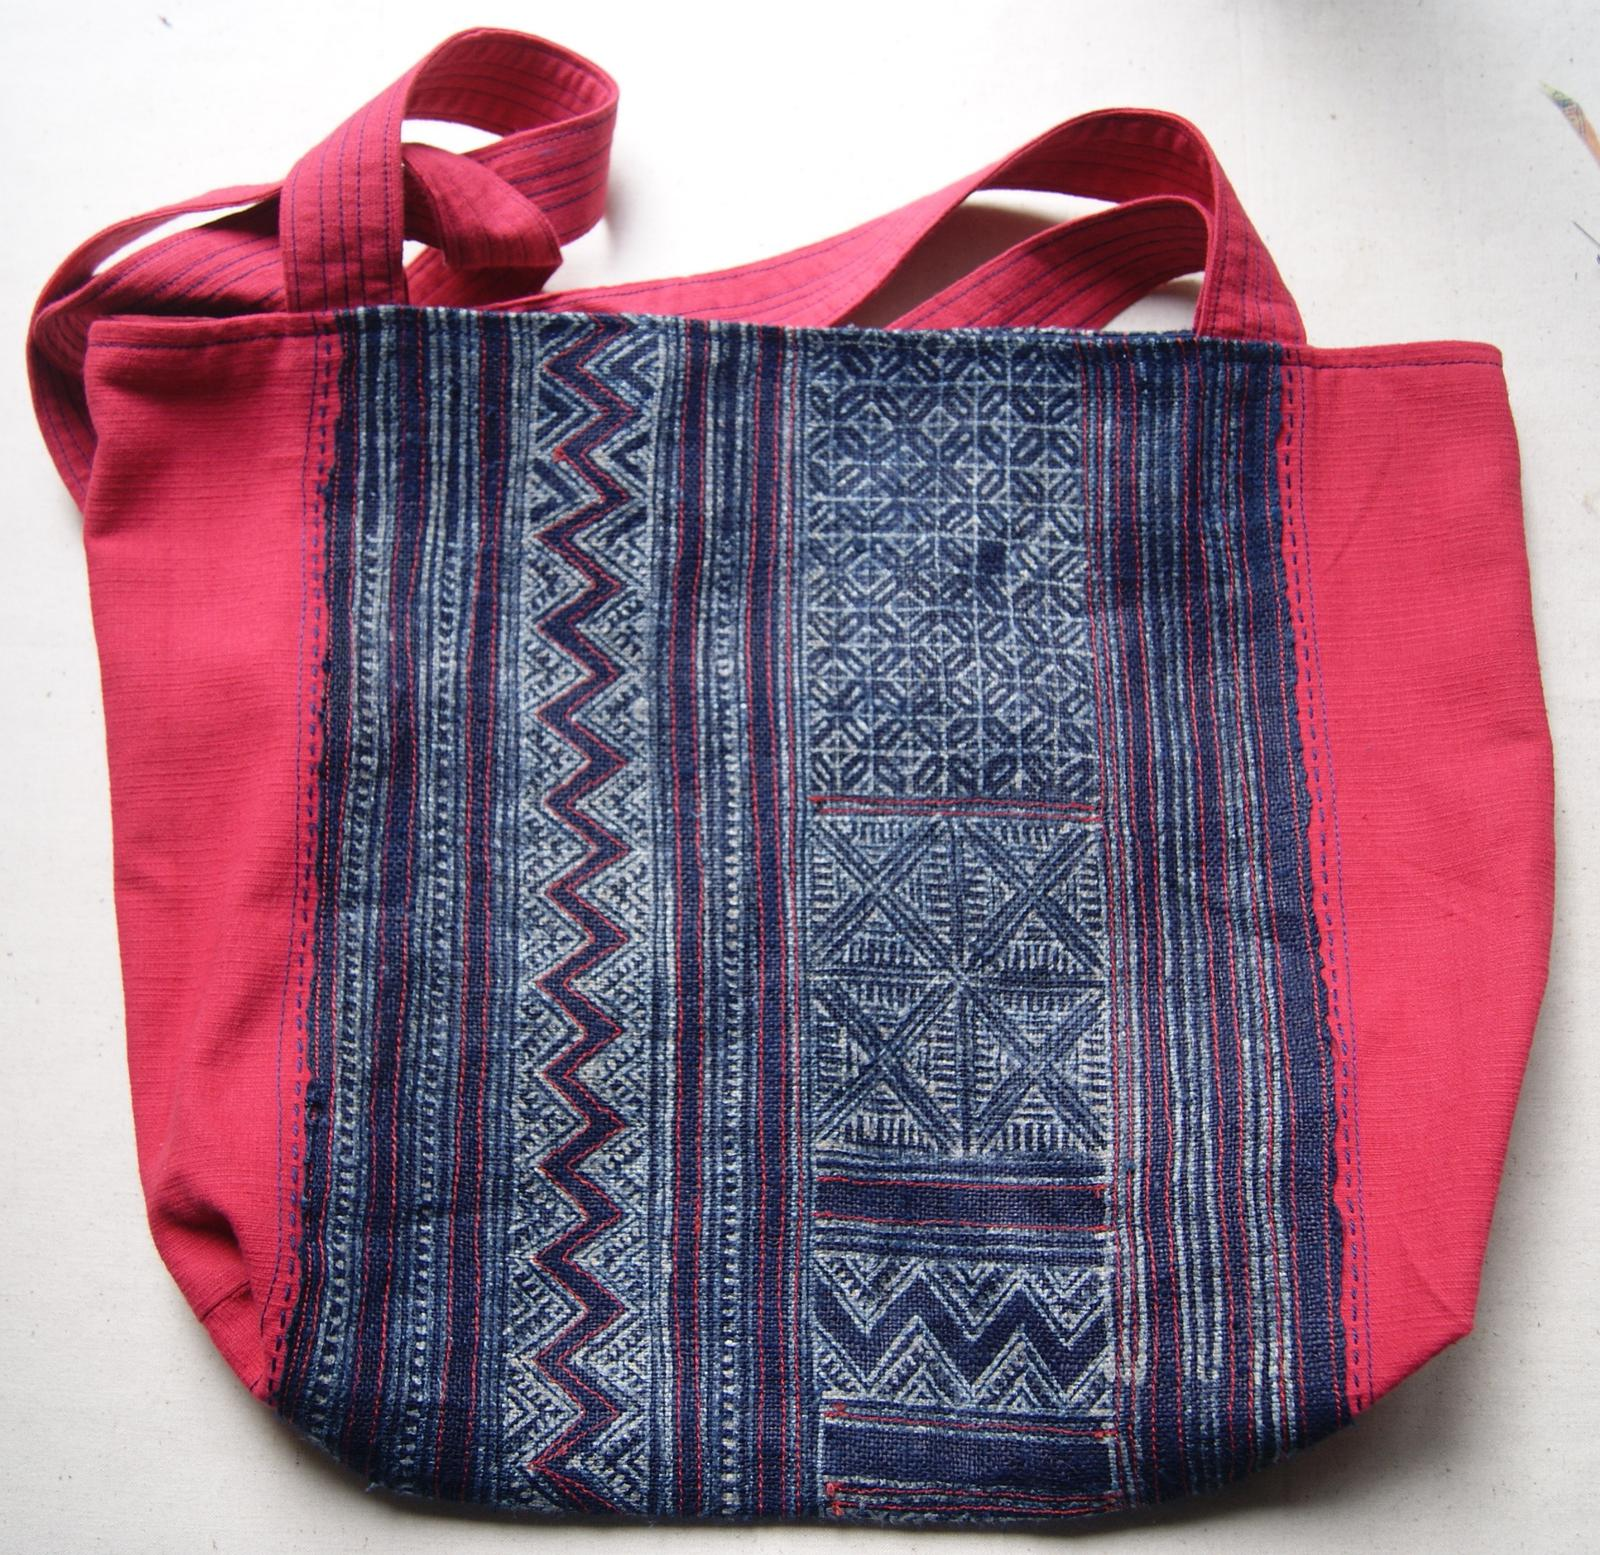 Hmong indigo dyed and handstitched bag - large